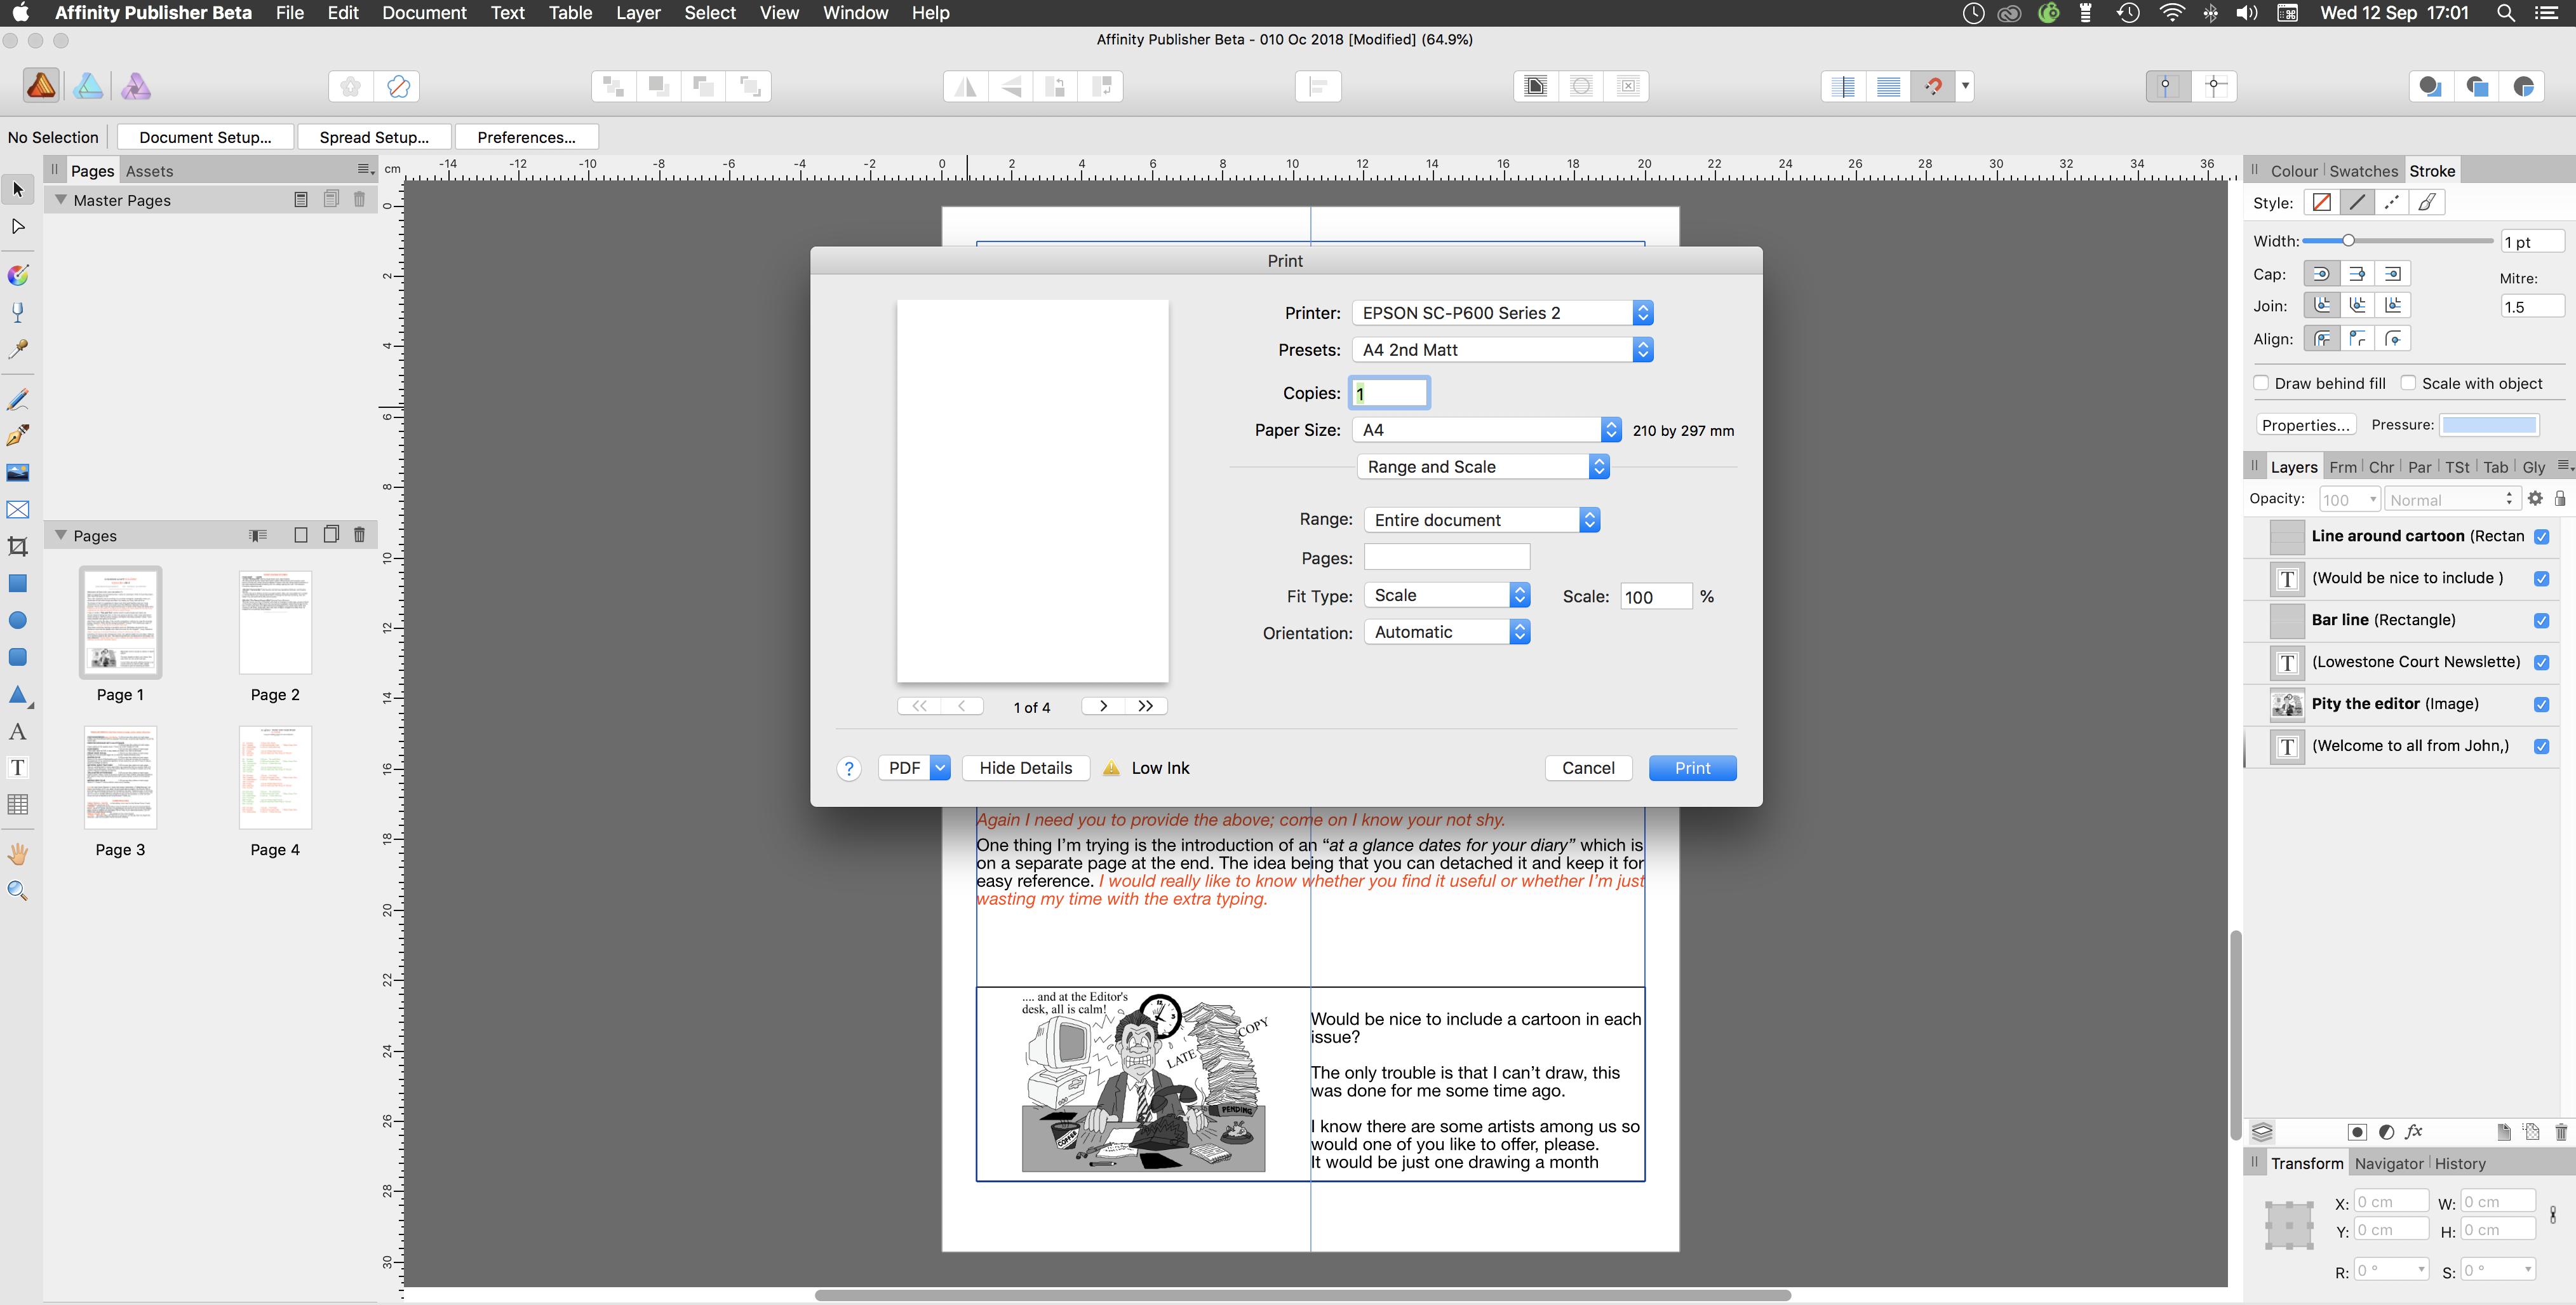 Printing won't work for me - Publisher beta on Mac